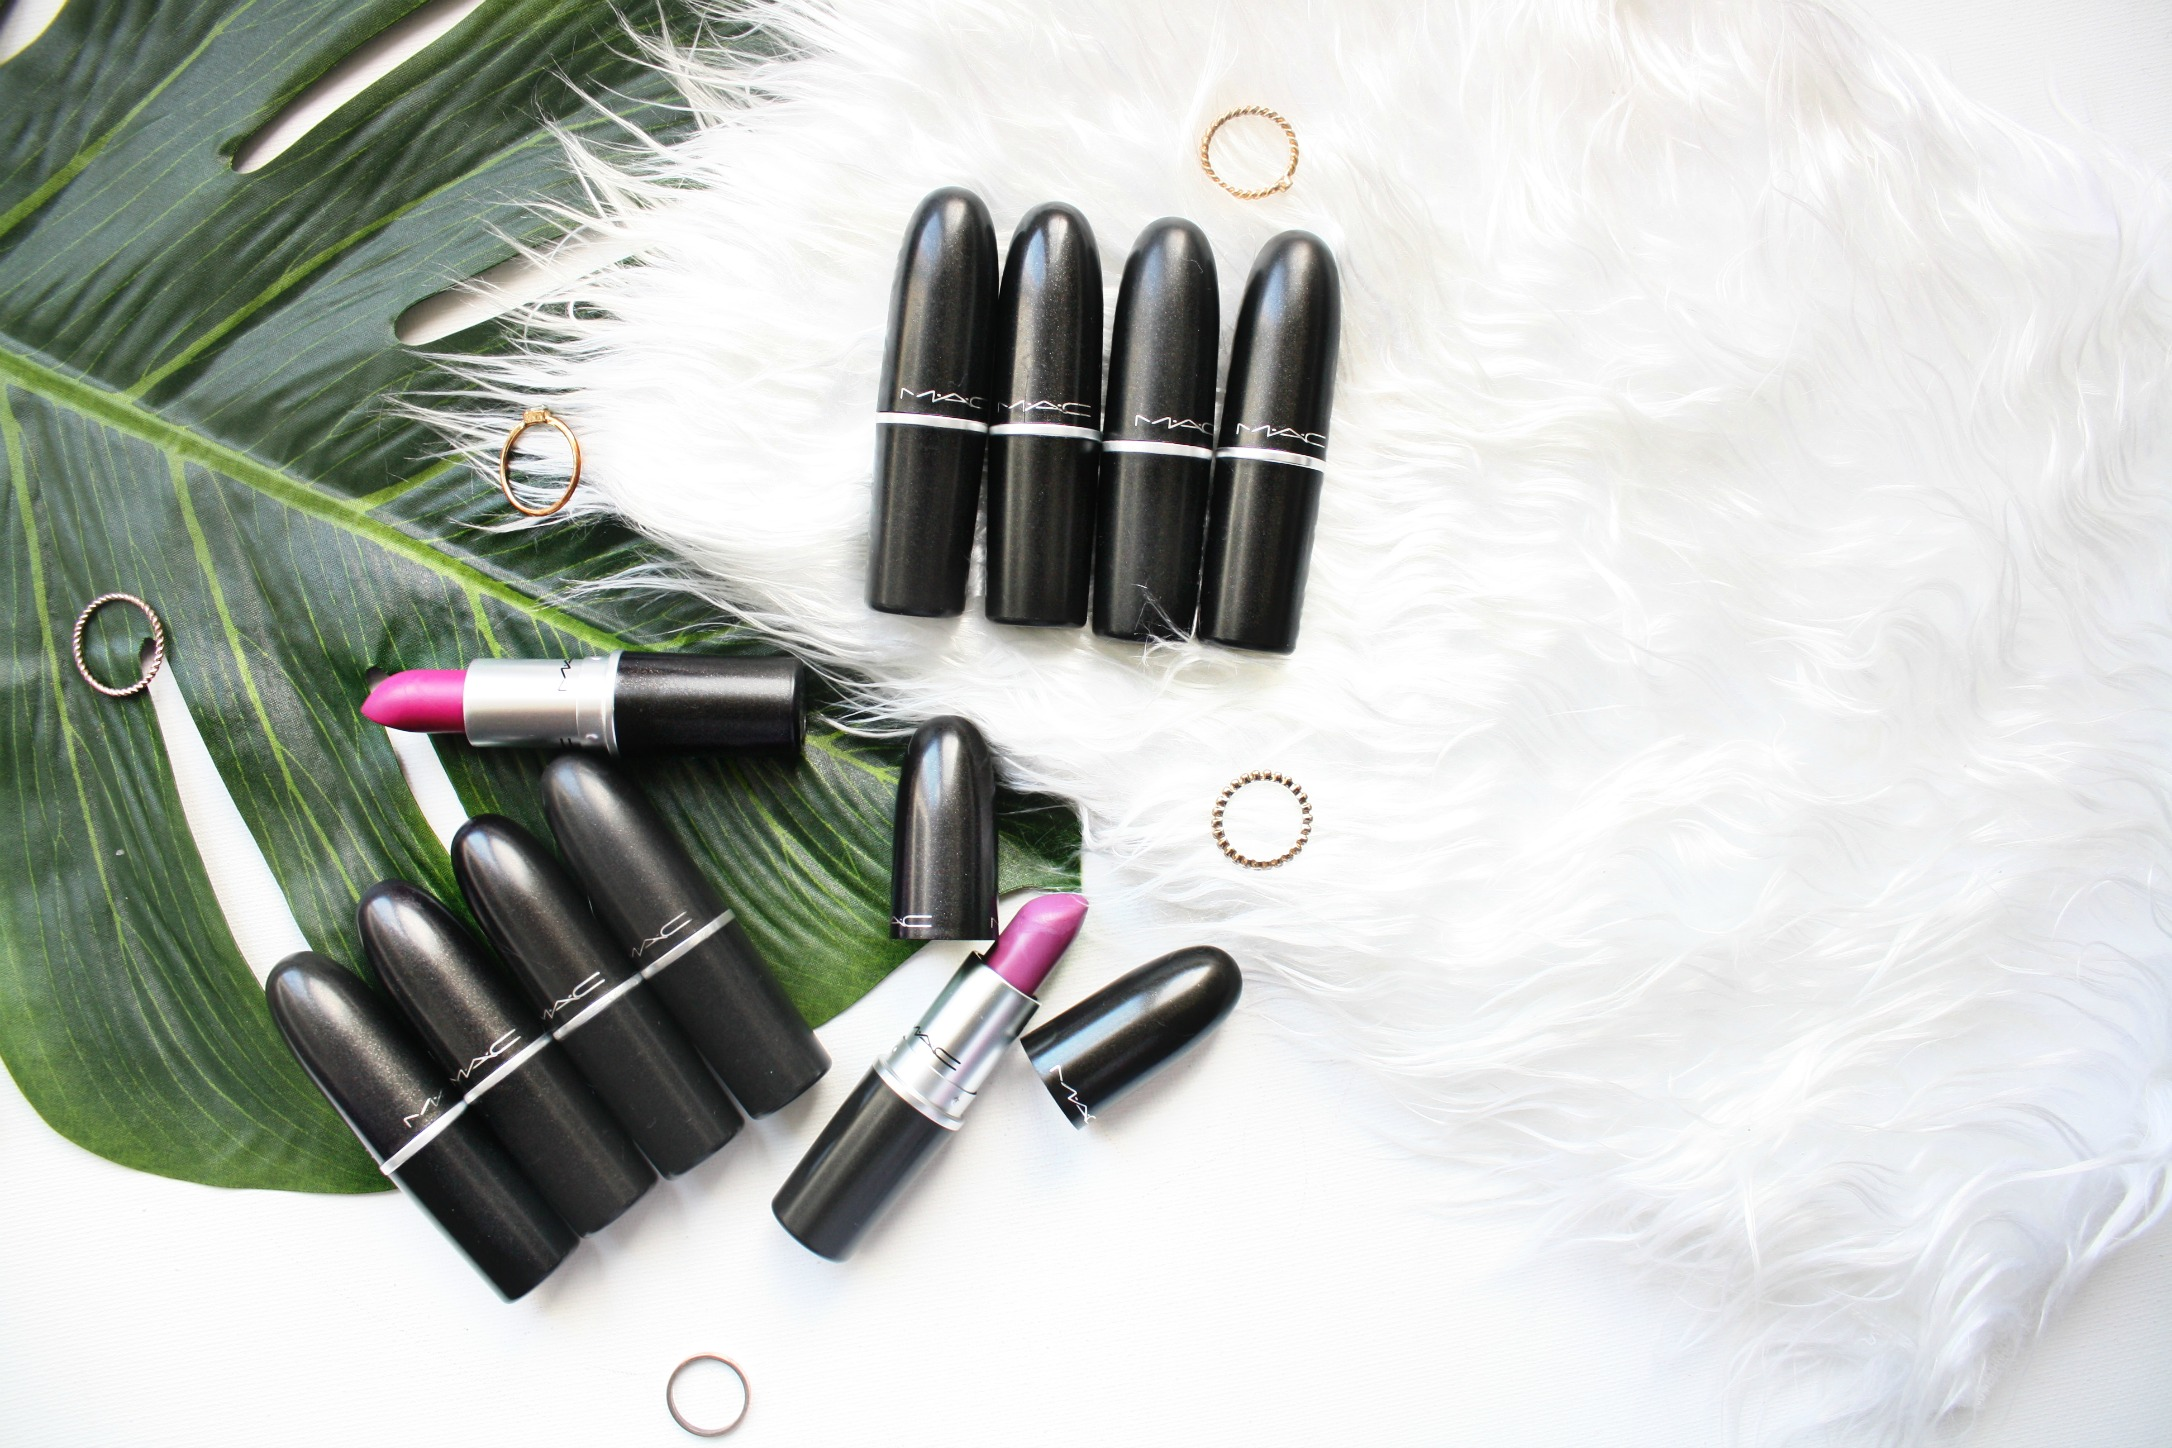 MAC Lipstick Review! I have a big collection but I'm ready to move on! Click to read my review and what lipsticks I want to try next!